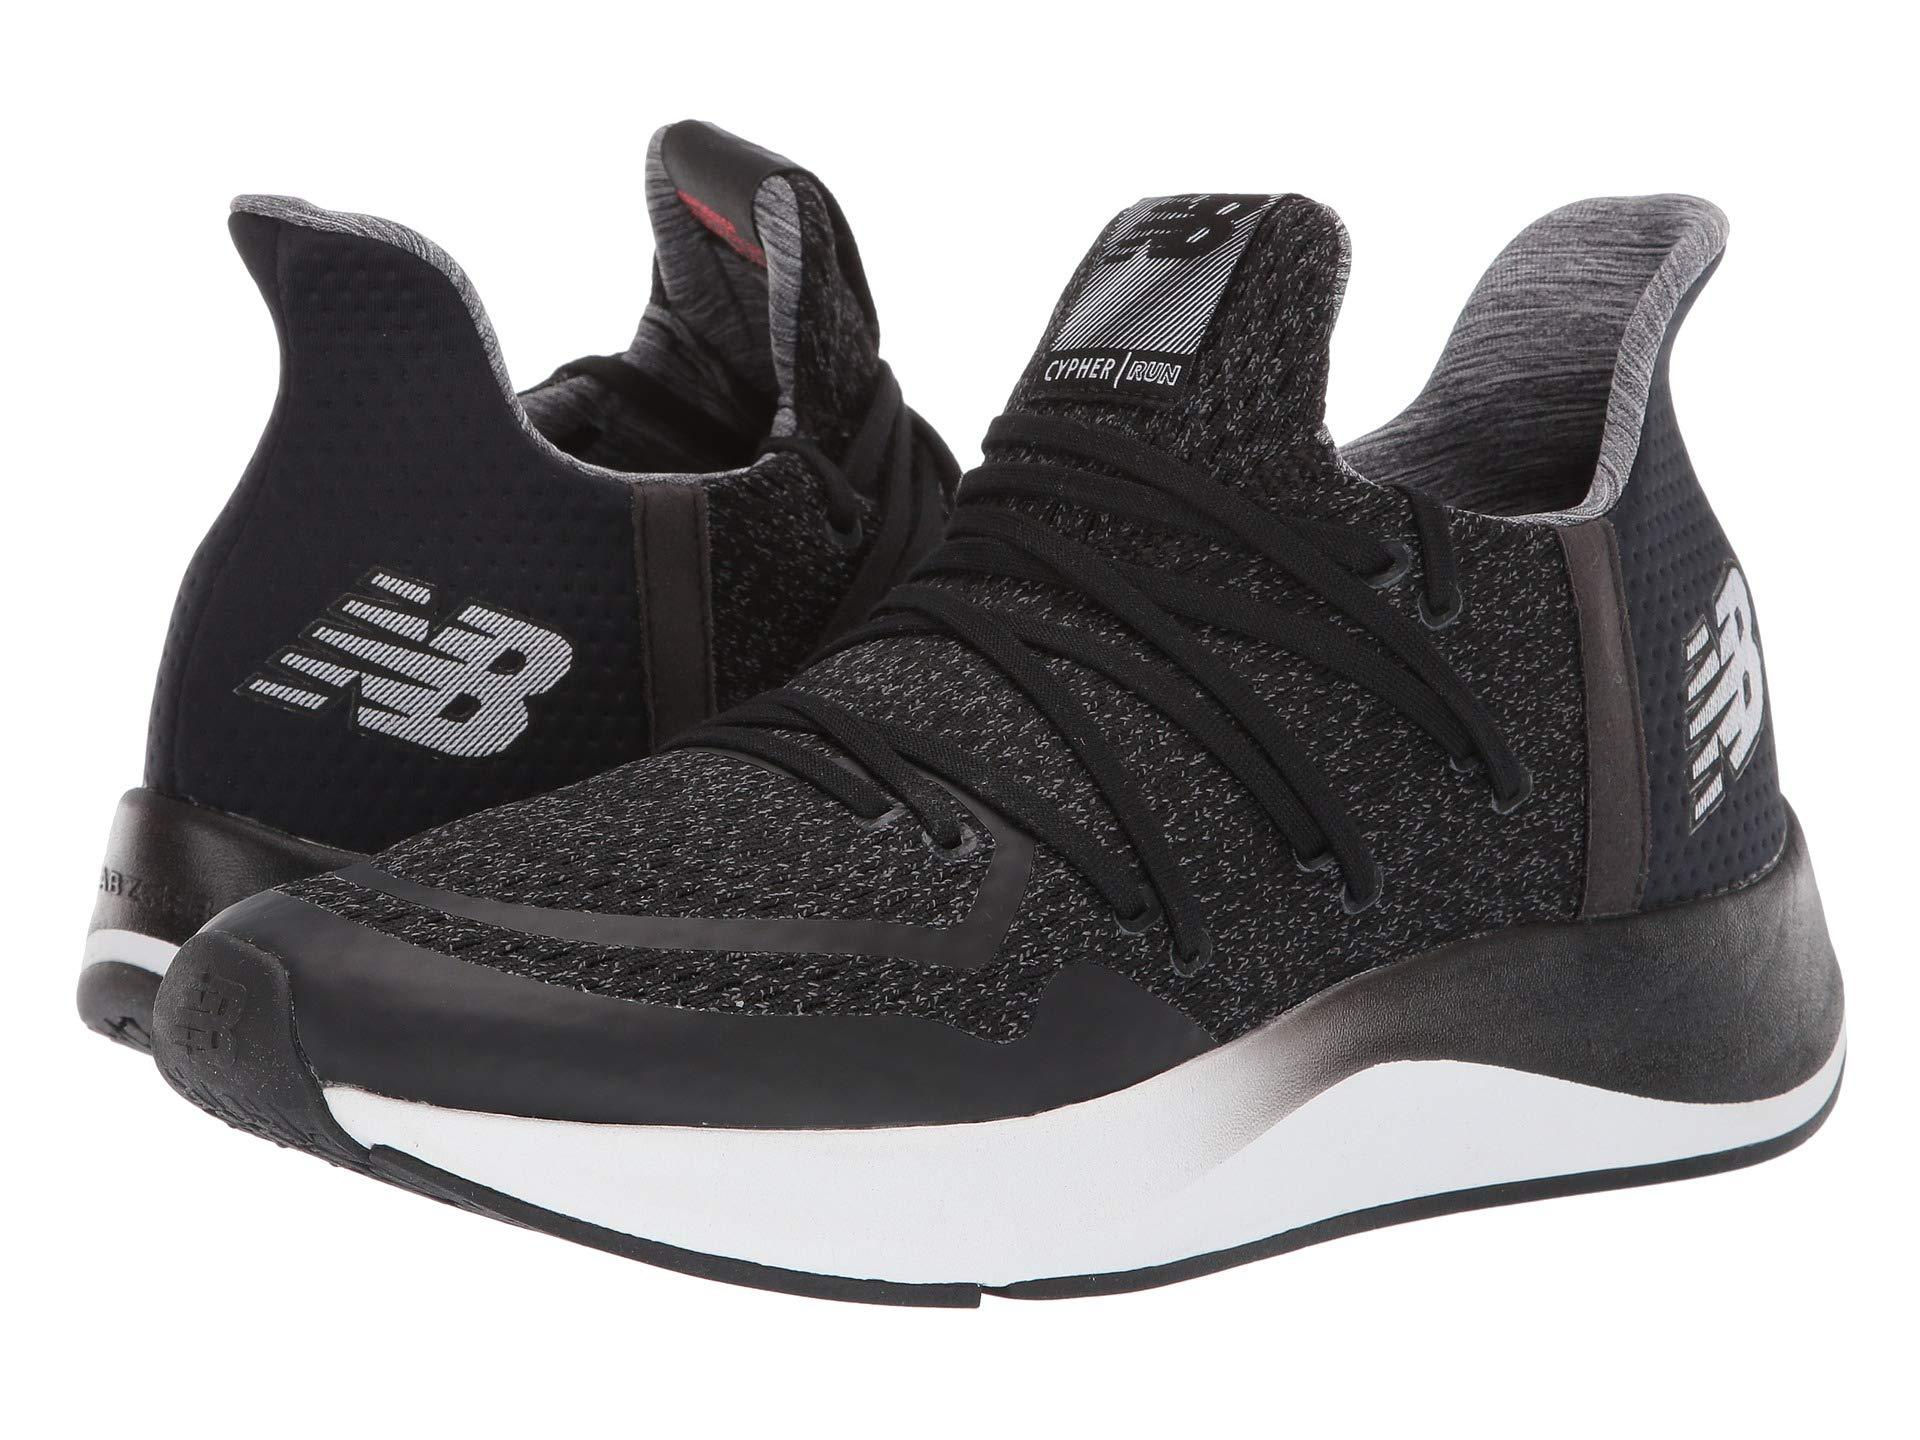 ce52b4600a03 Lyst - New Balance Cypher V2 (black magnet) Men s Running Shoes in ...